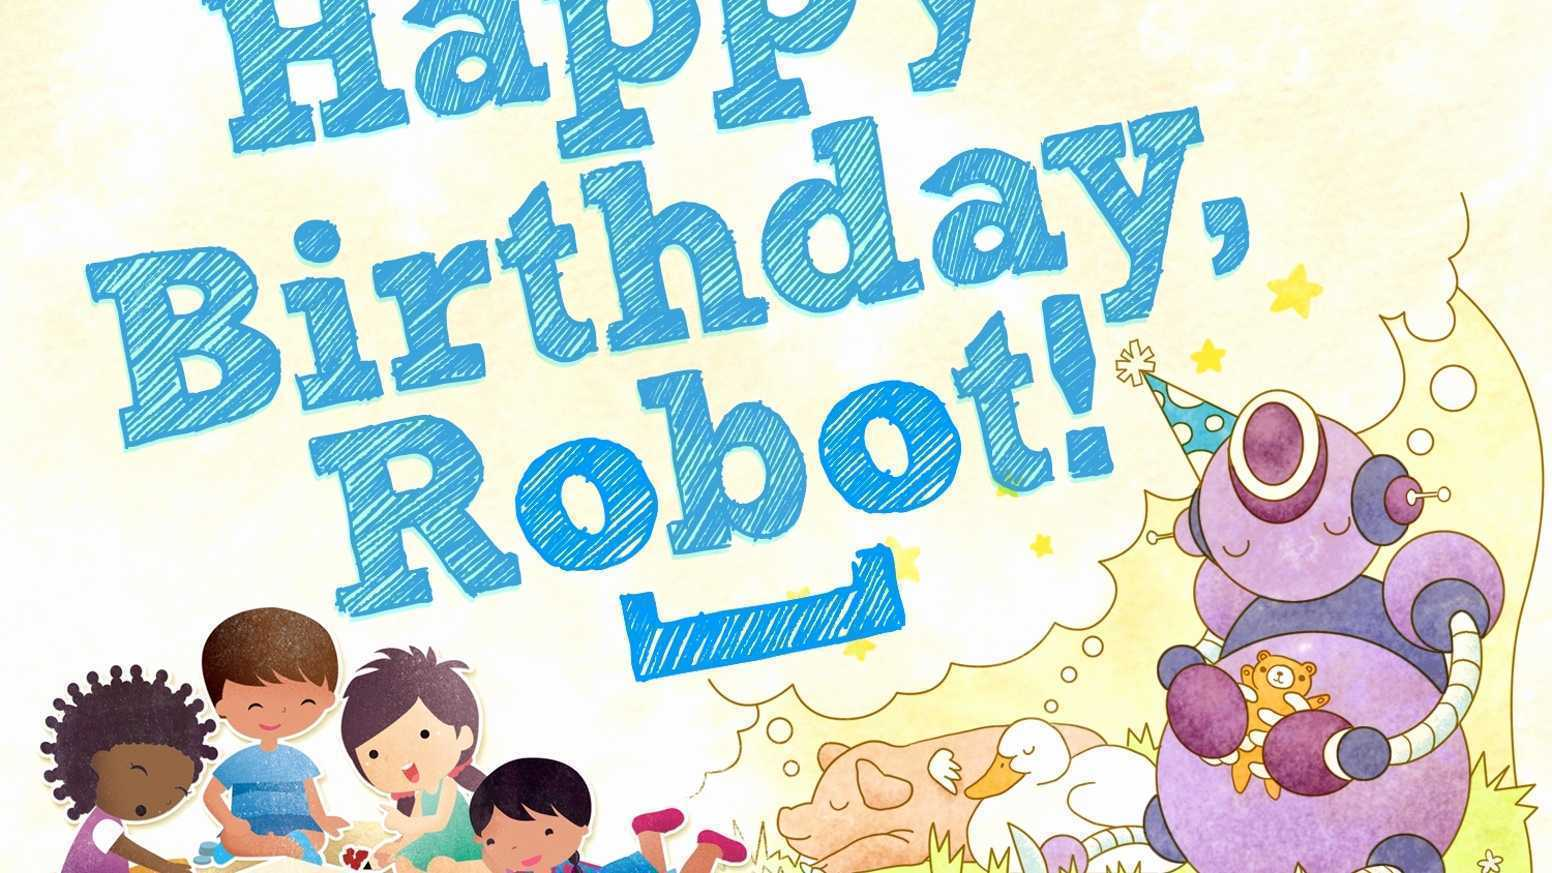 free happy birthday images to copy ; happy-birthday-images-to-copy-awesome-happy-birthday-robot-by-daniel-solis-kickstarter-of-happy-birthday-images-to-copy